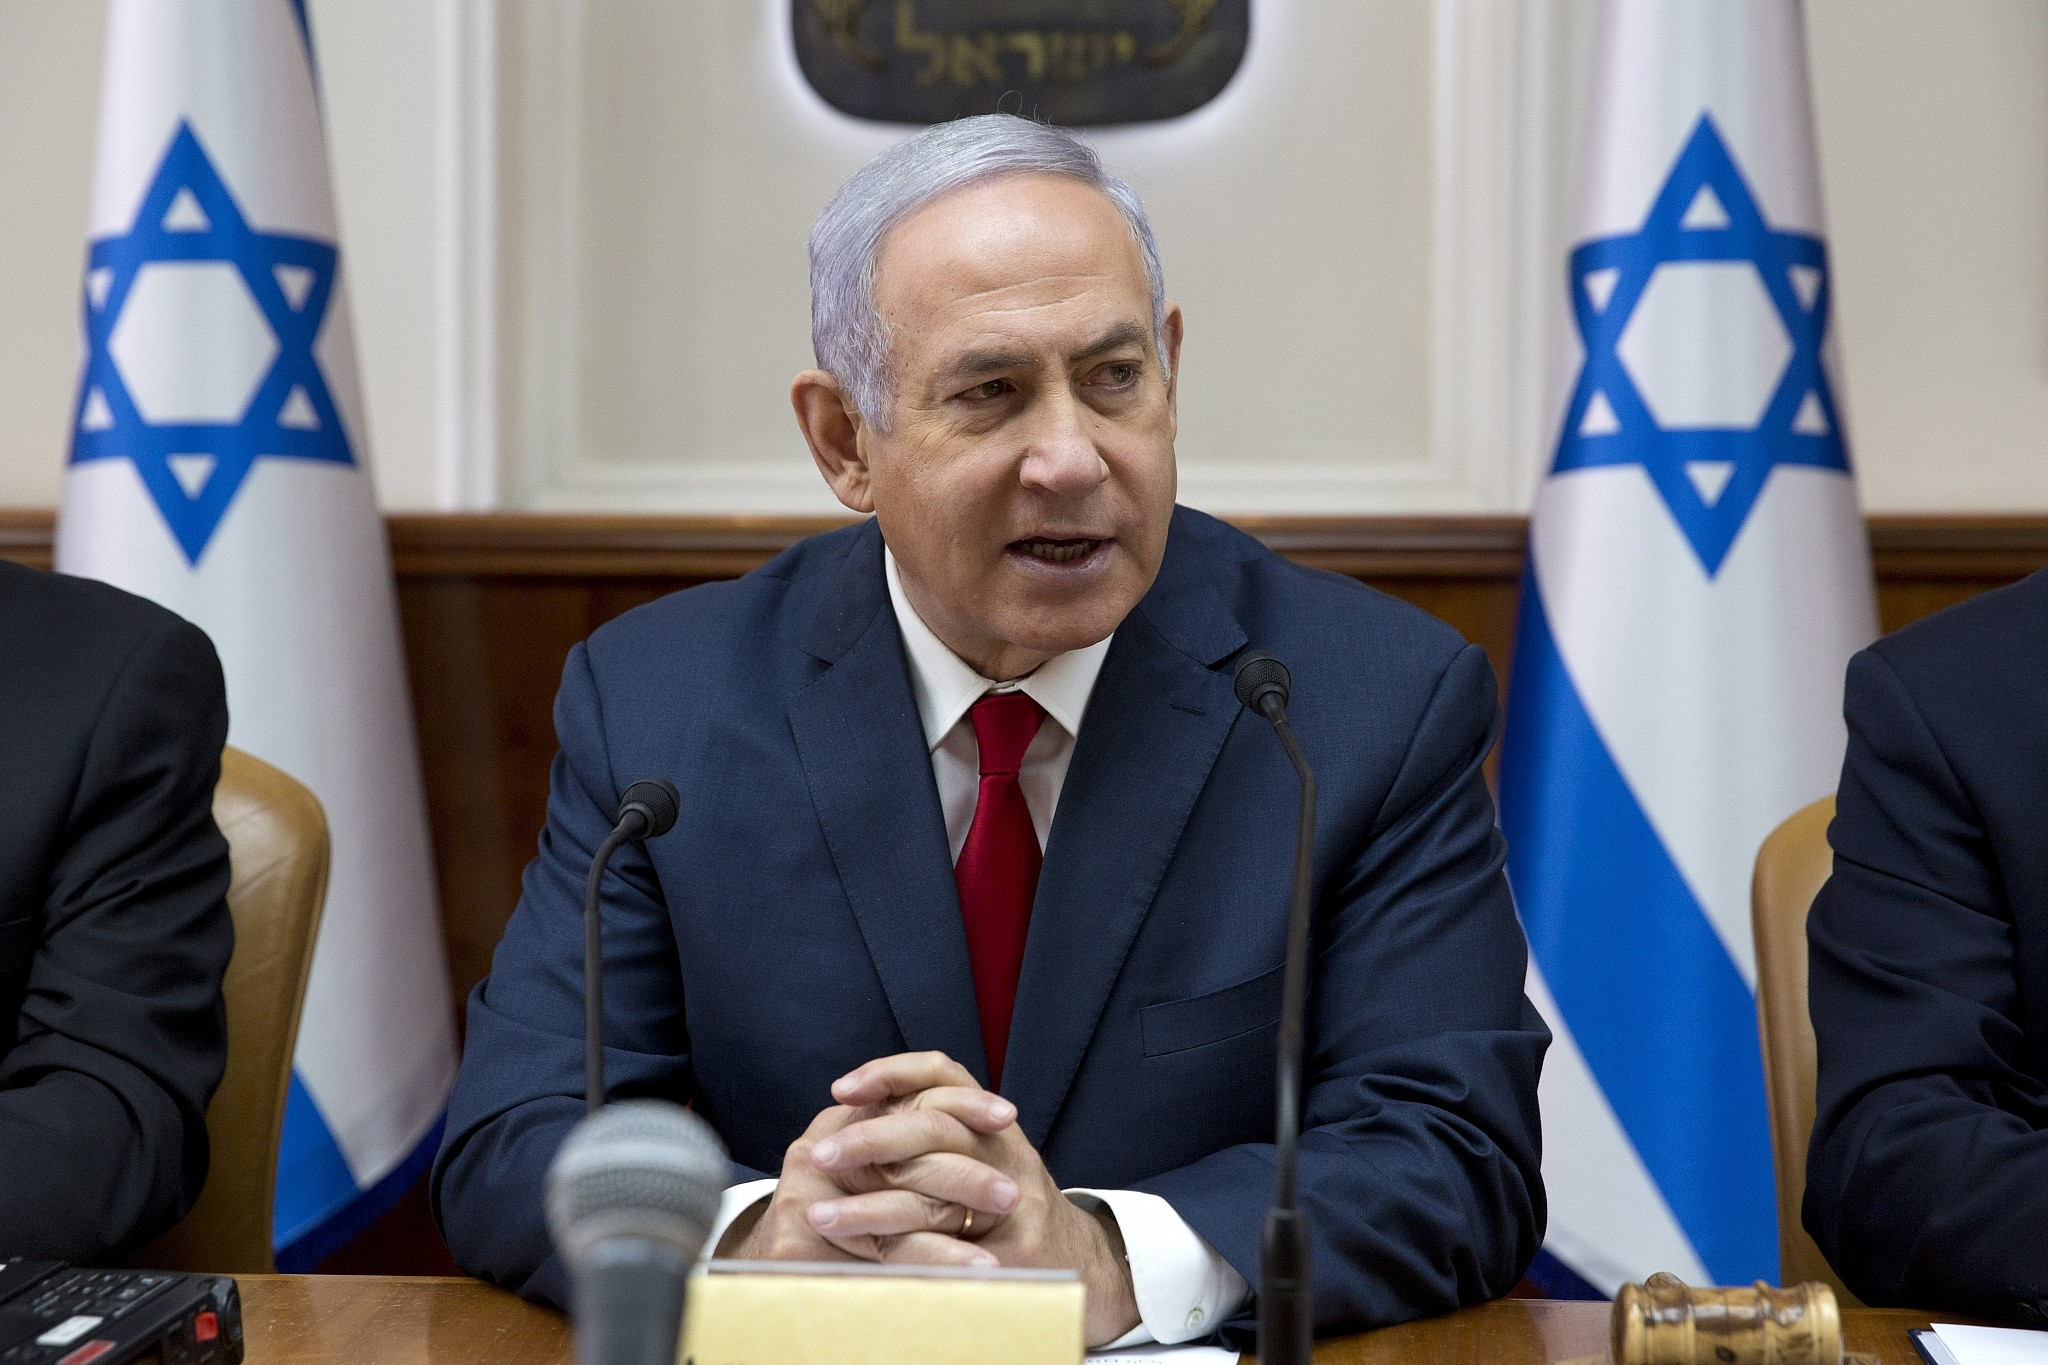 Holocaust row: Poland shuns Israel talks over Netanyahu 'racism'